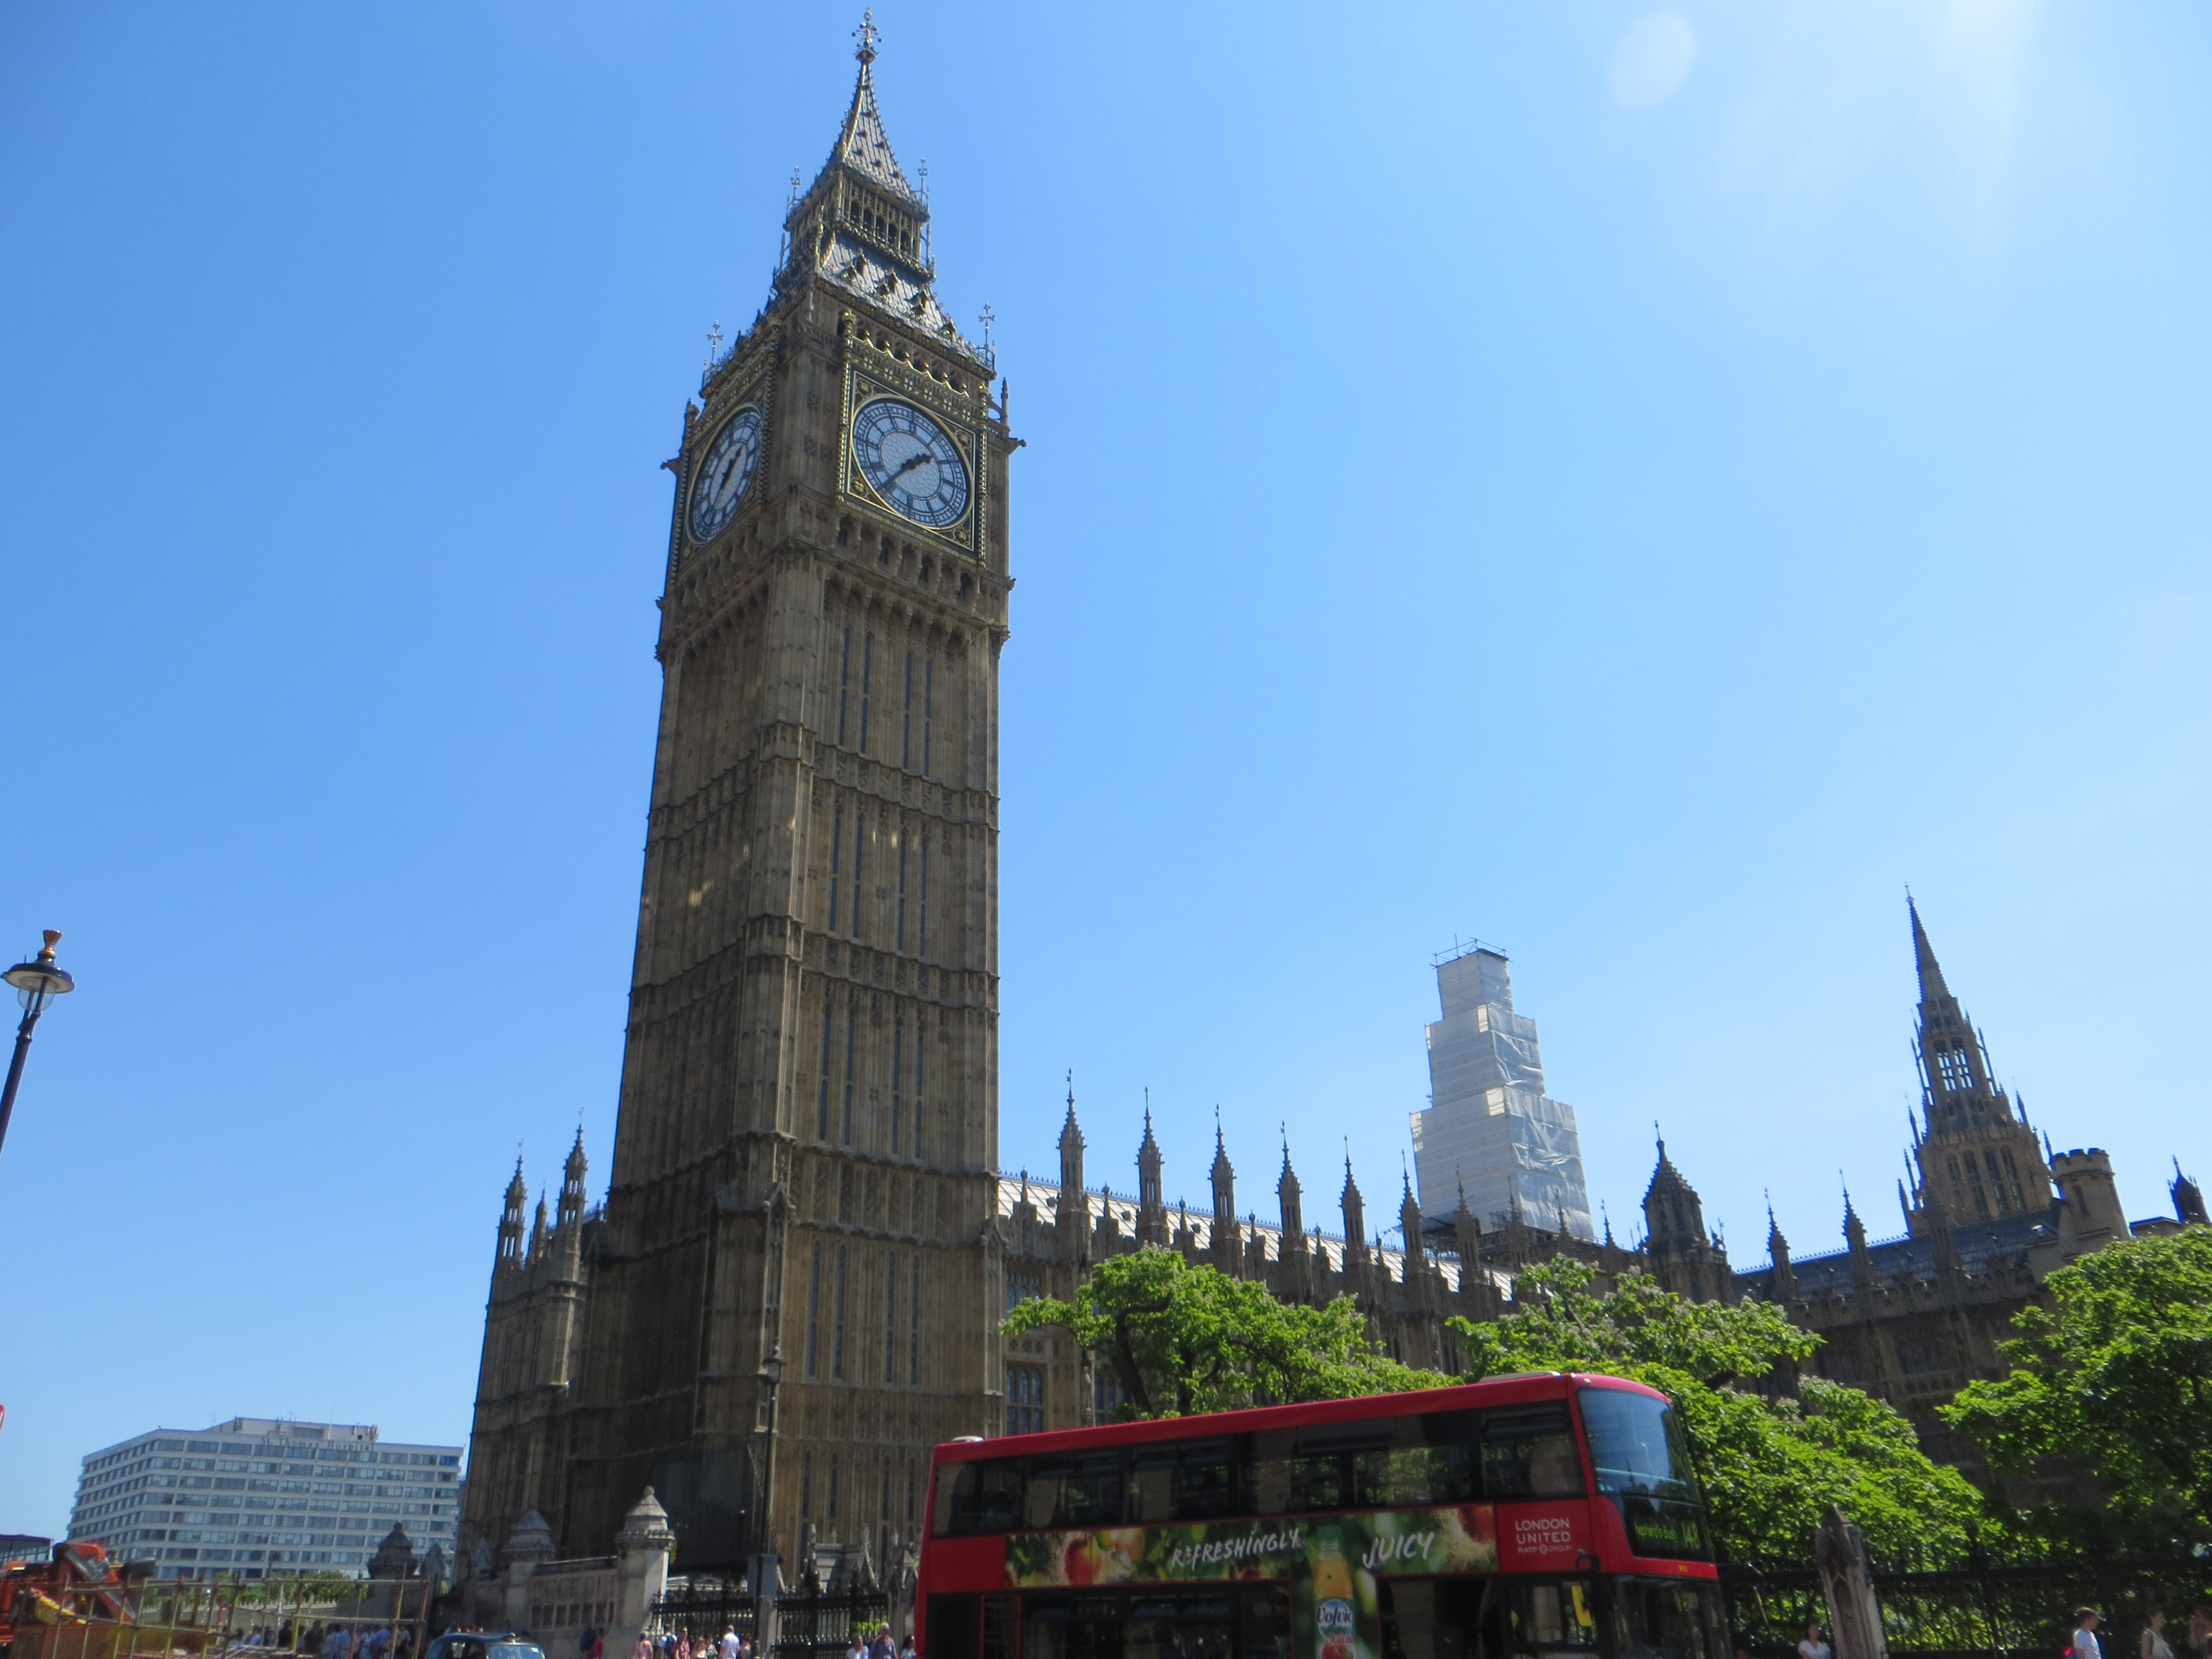 Big Ben (and a red London bus passing by!)